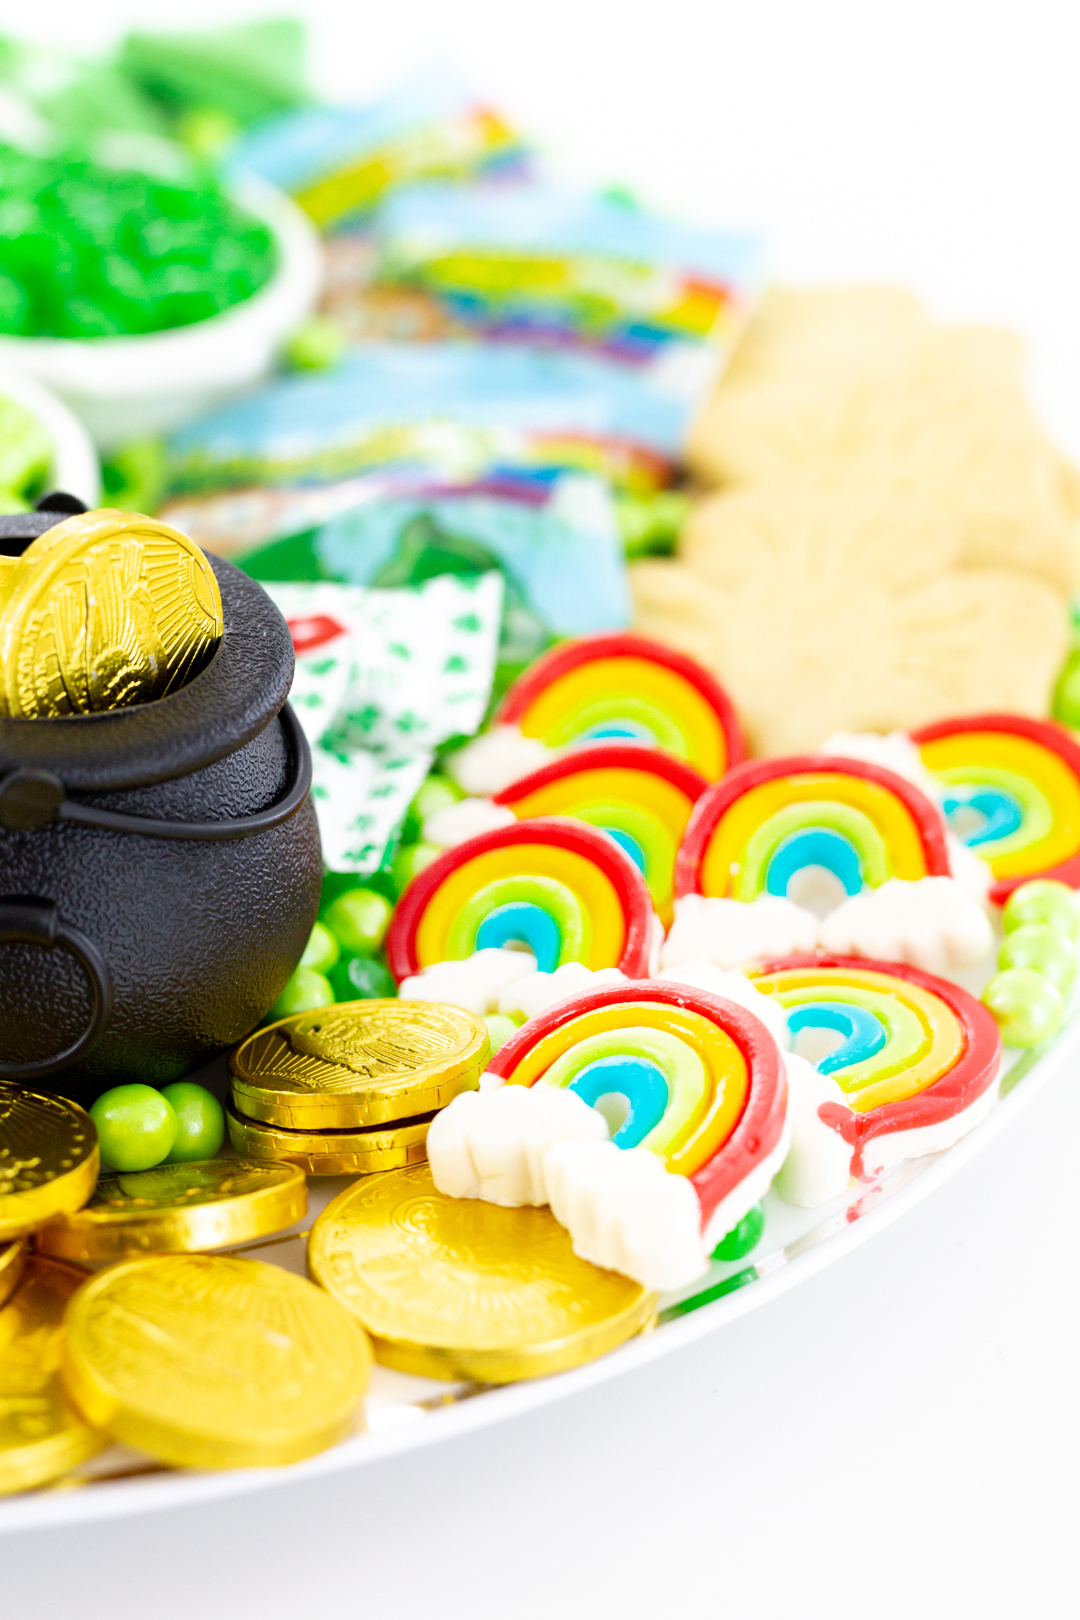 rainbow gummy candies and gold coins on a tray